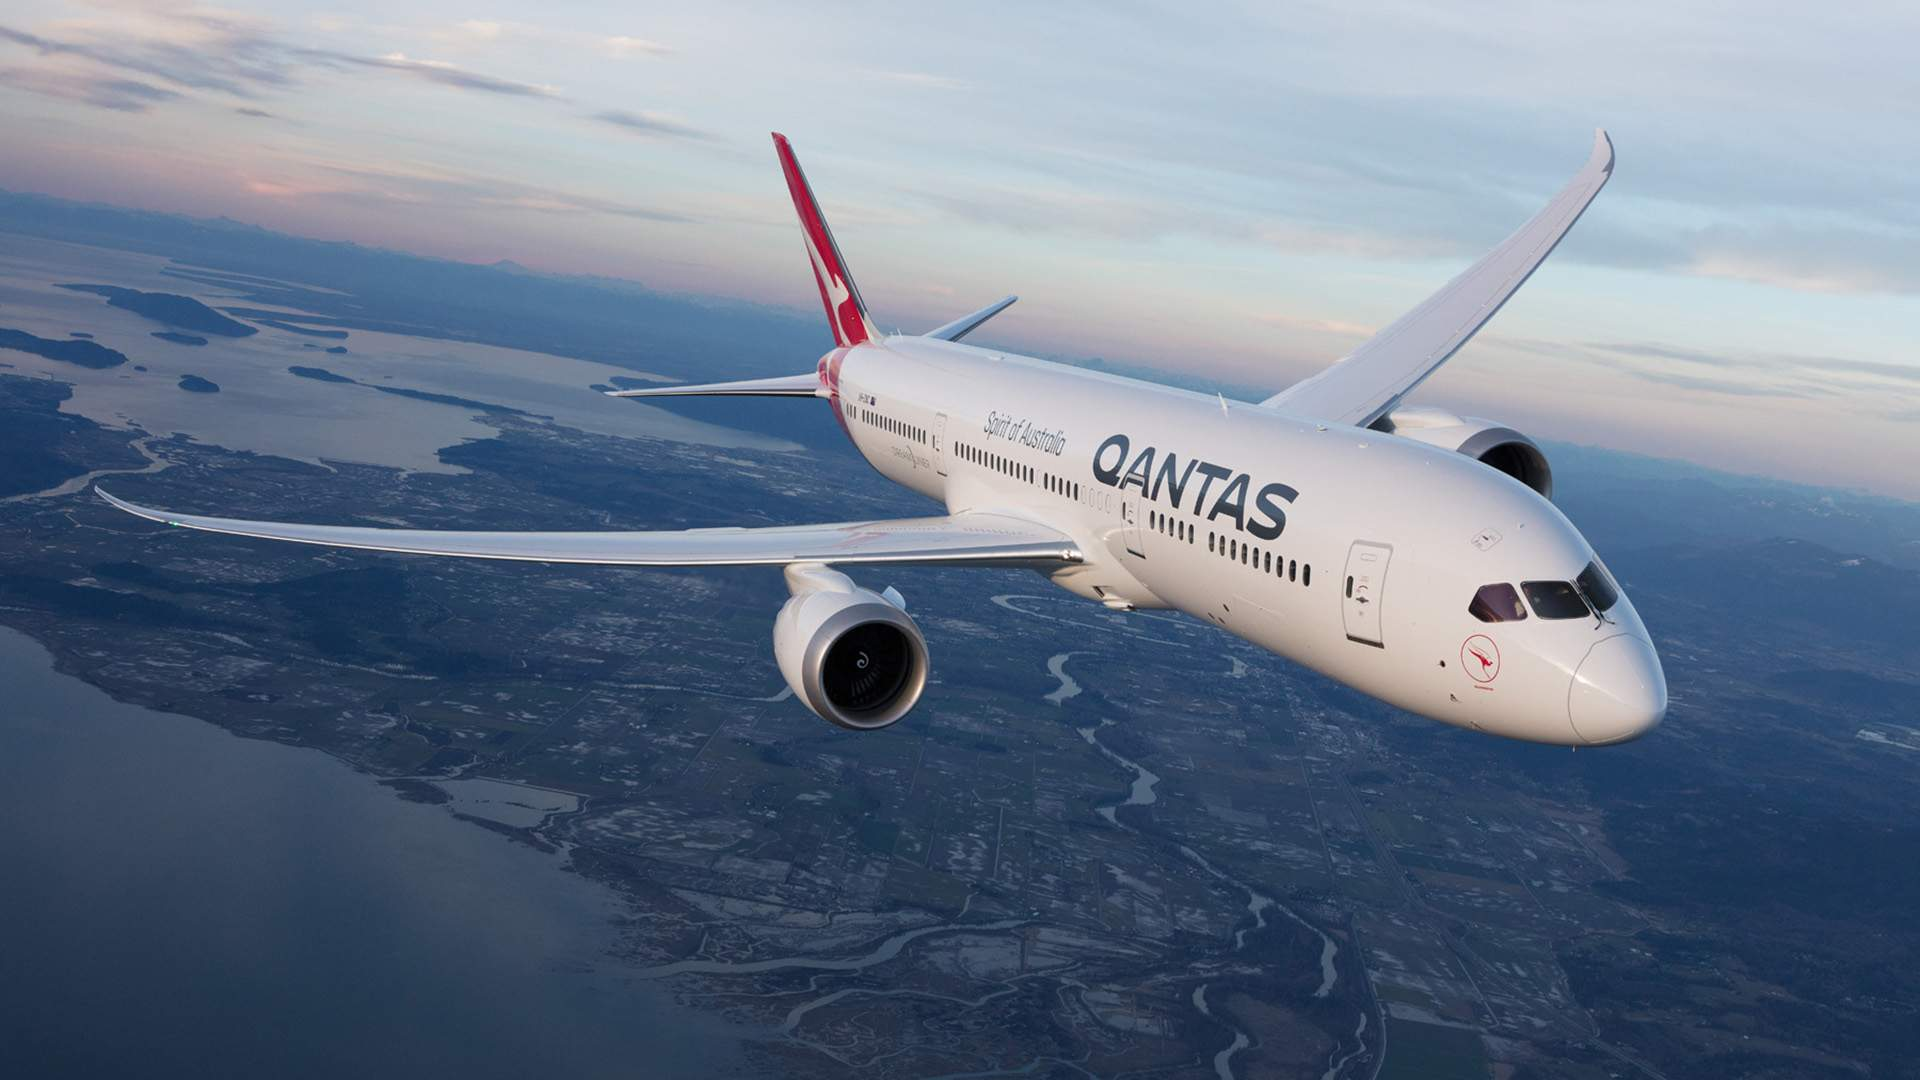 Qantas Will Only Let Passengers Fly Overseas If They've Had a COVID-19 Vaccination